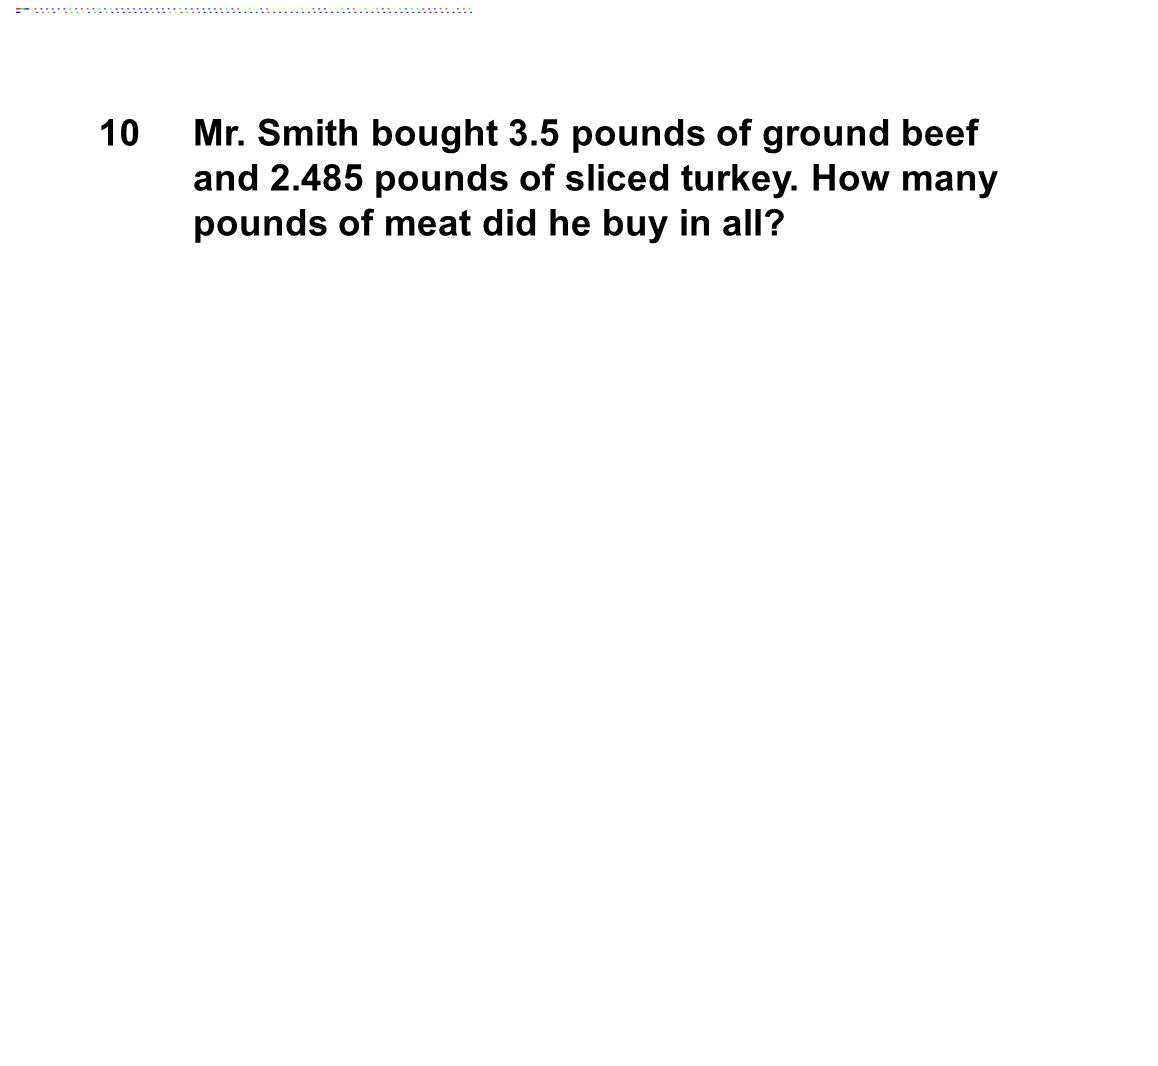 10Mr. Smith bought 3.5 pounds of ground beef and 2.485 pounds of sliced turkey.